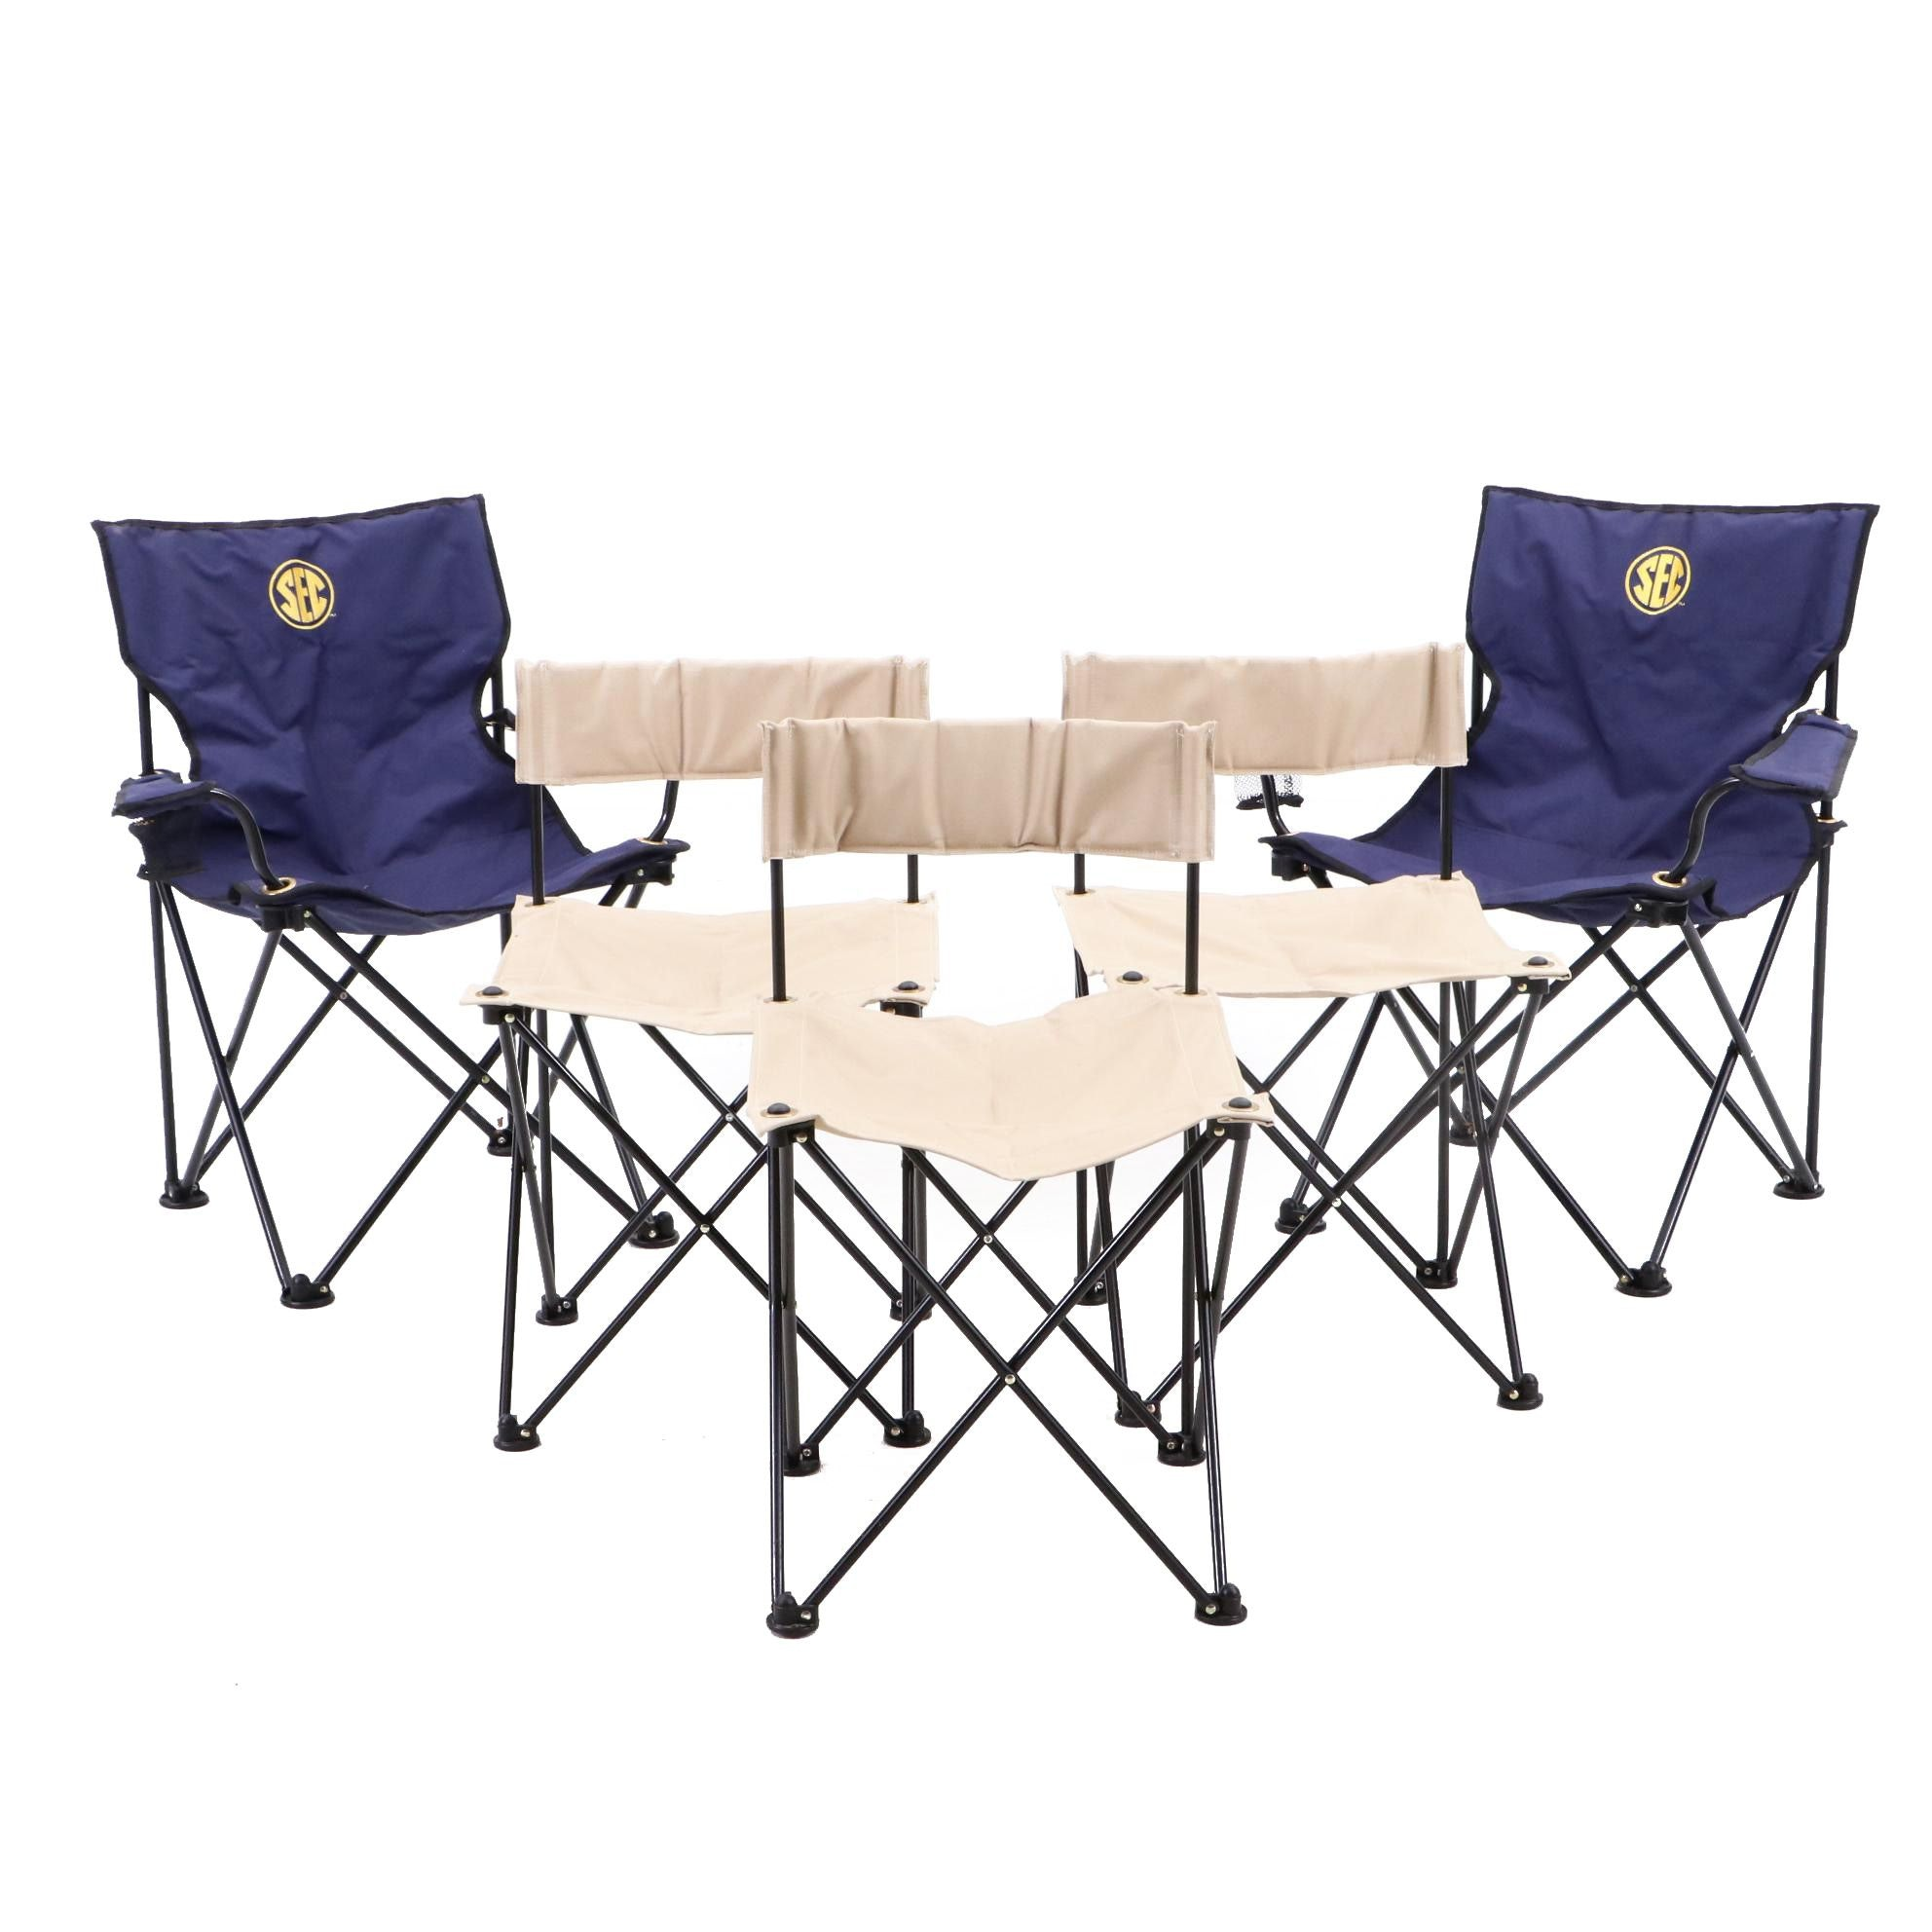 SEC and Final Four 1999 Folding Portable Tailgating Chairs